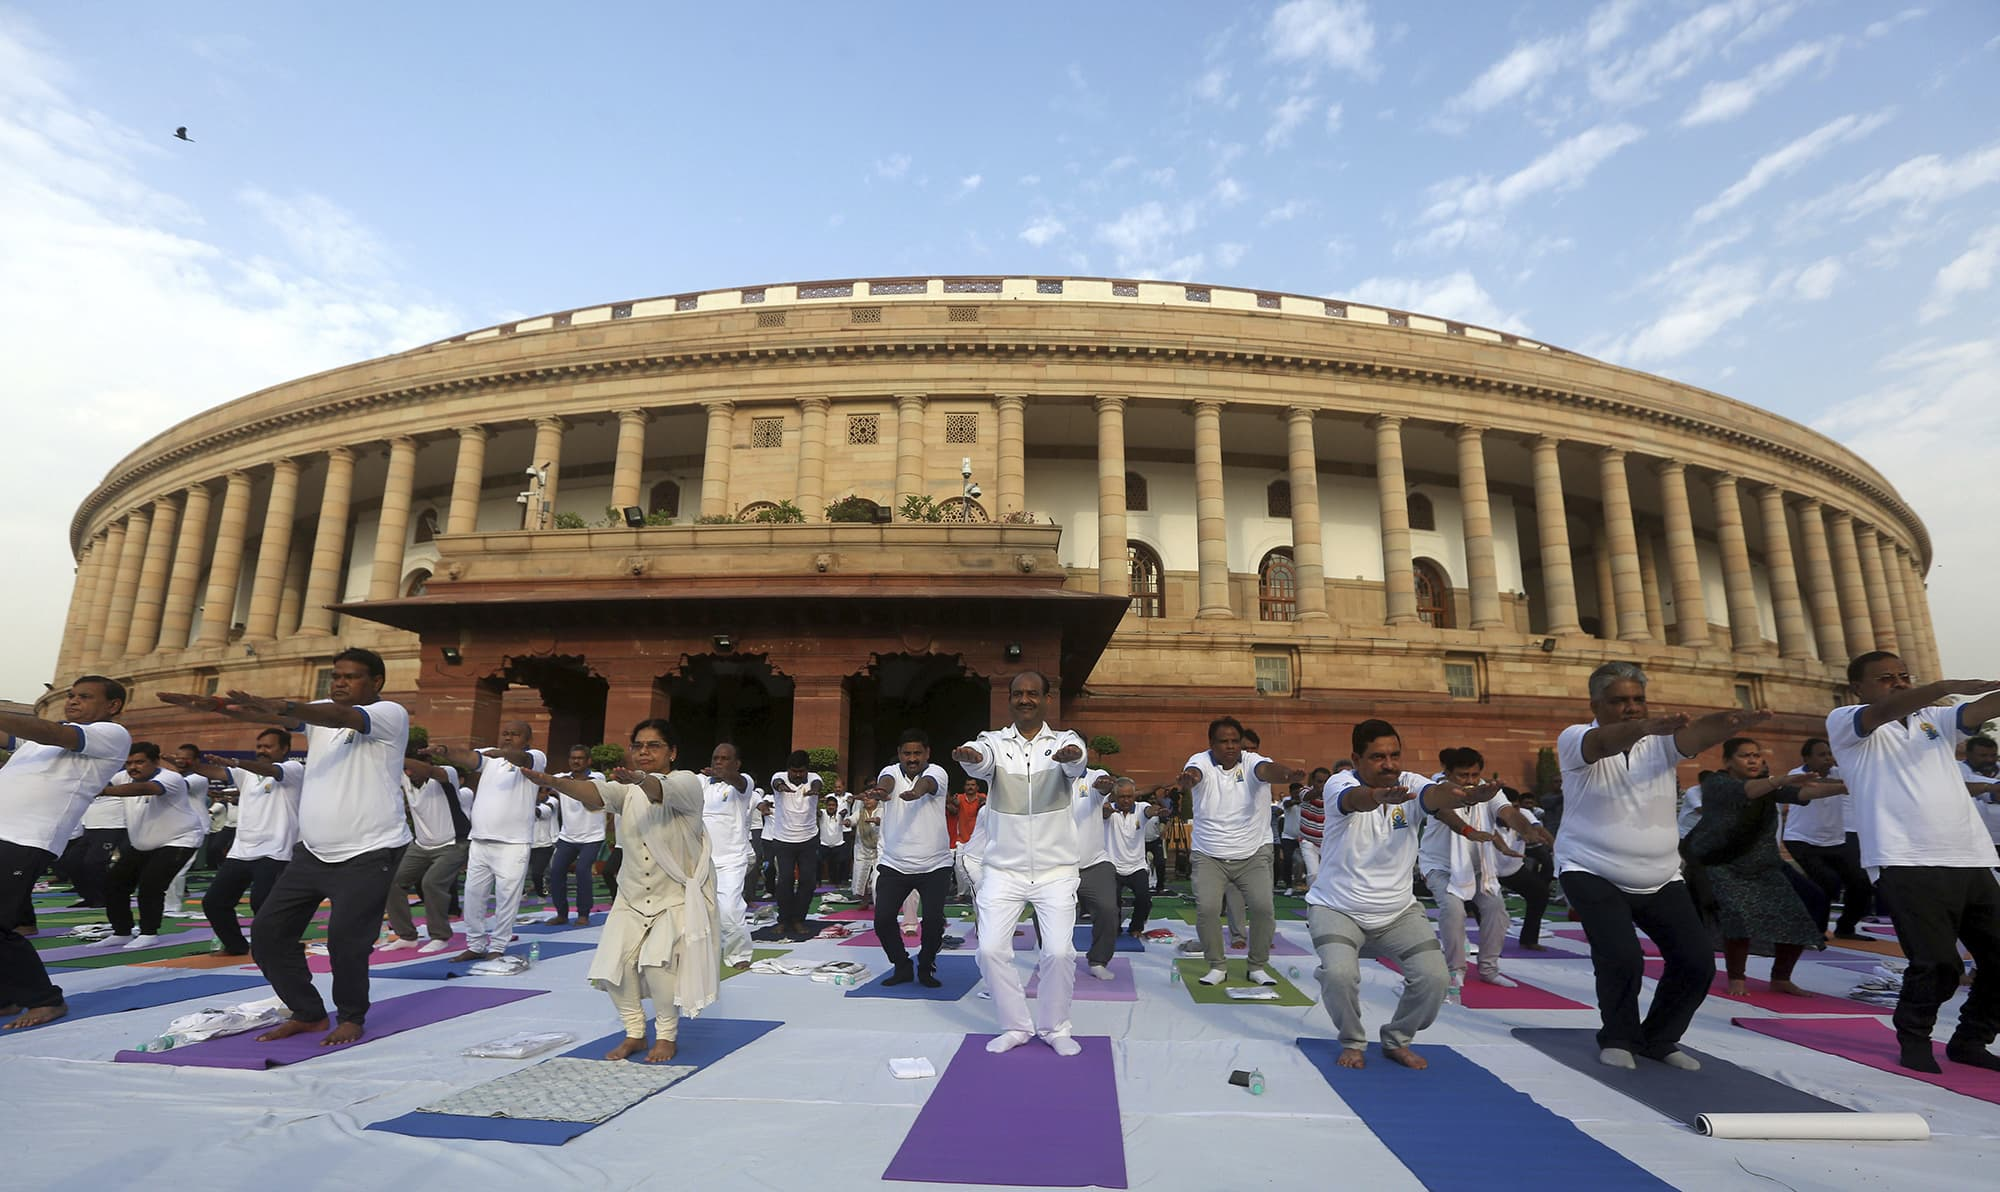 Indian lawmakers perform yoga in front of the parliament house to mark International Yoga Day in New Delhi, India on June 21. — AP